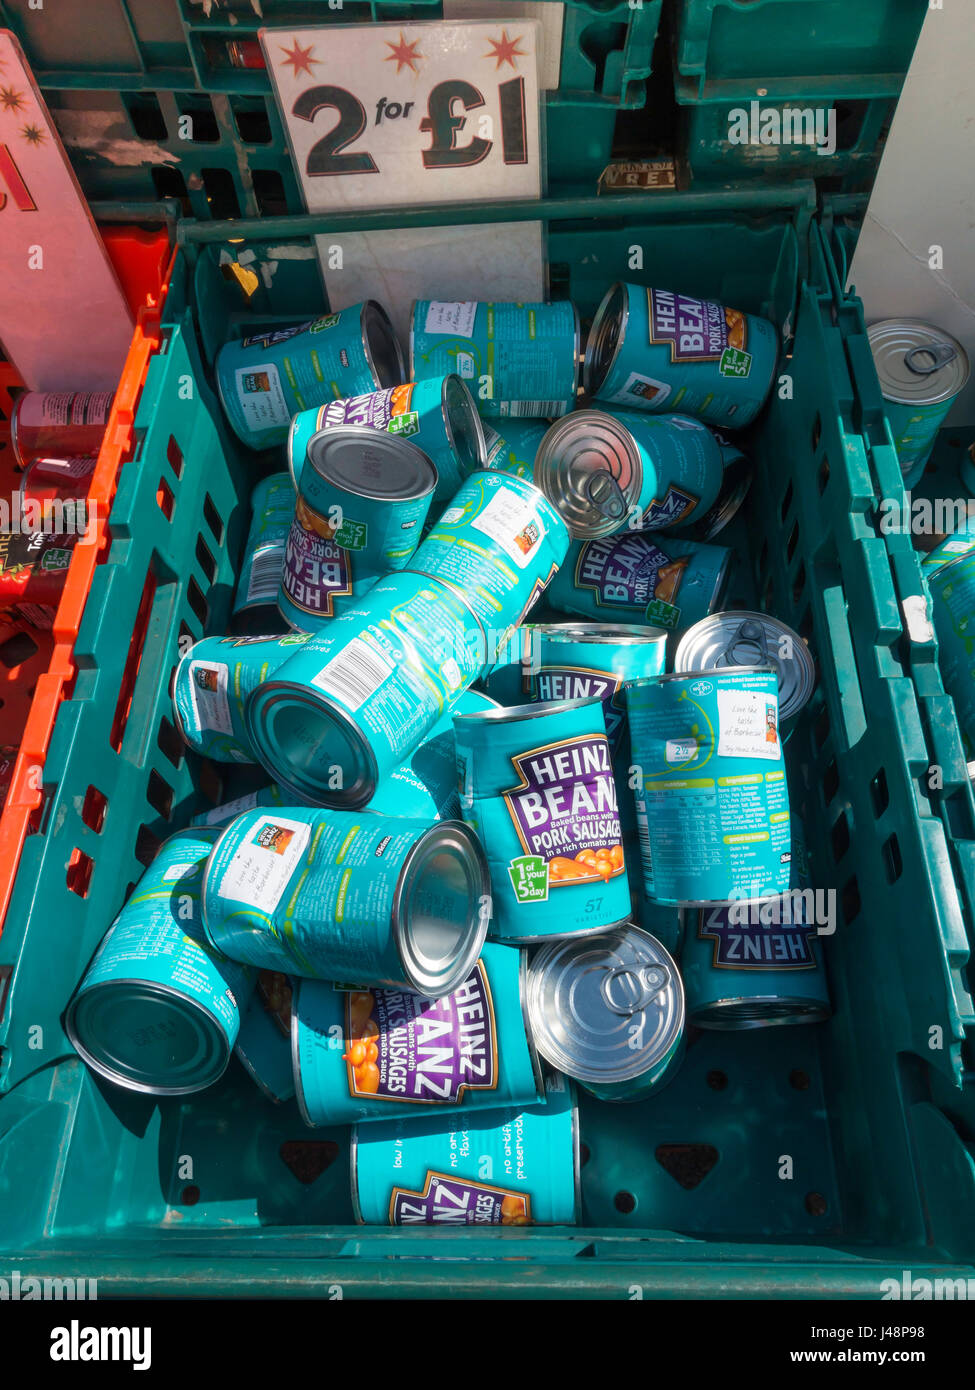 Display of damaged tins of Heinz baked beans and pork sausages for sale on a stall at a weekly market in North Yorkshire - Stock Image